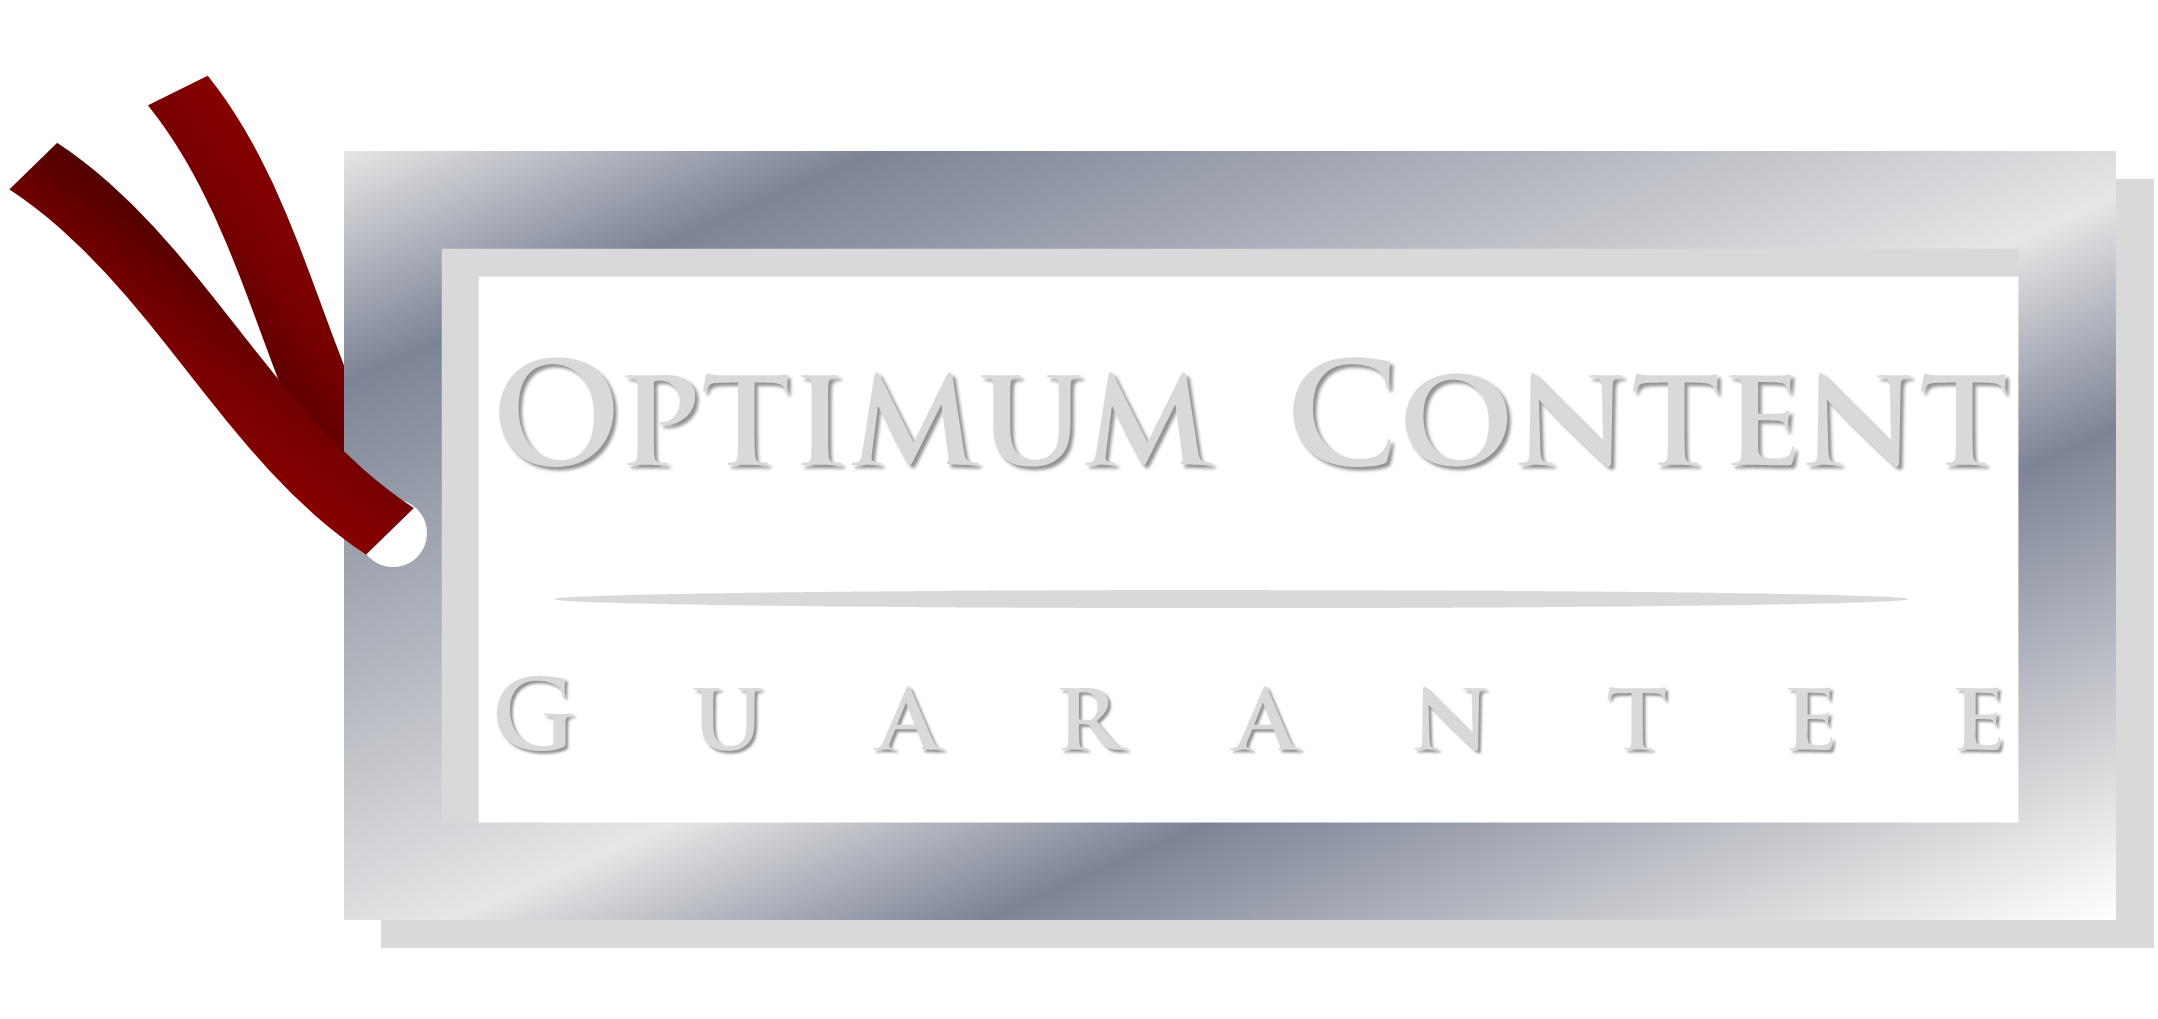 COBALT OPTIMUM CONTENT GUARANTEE